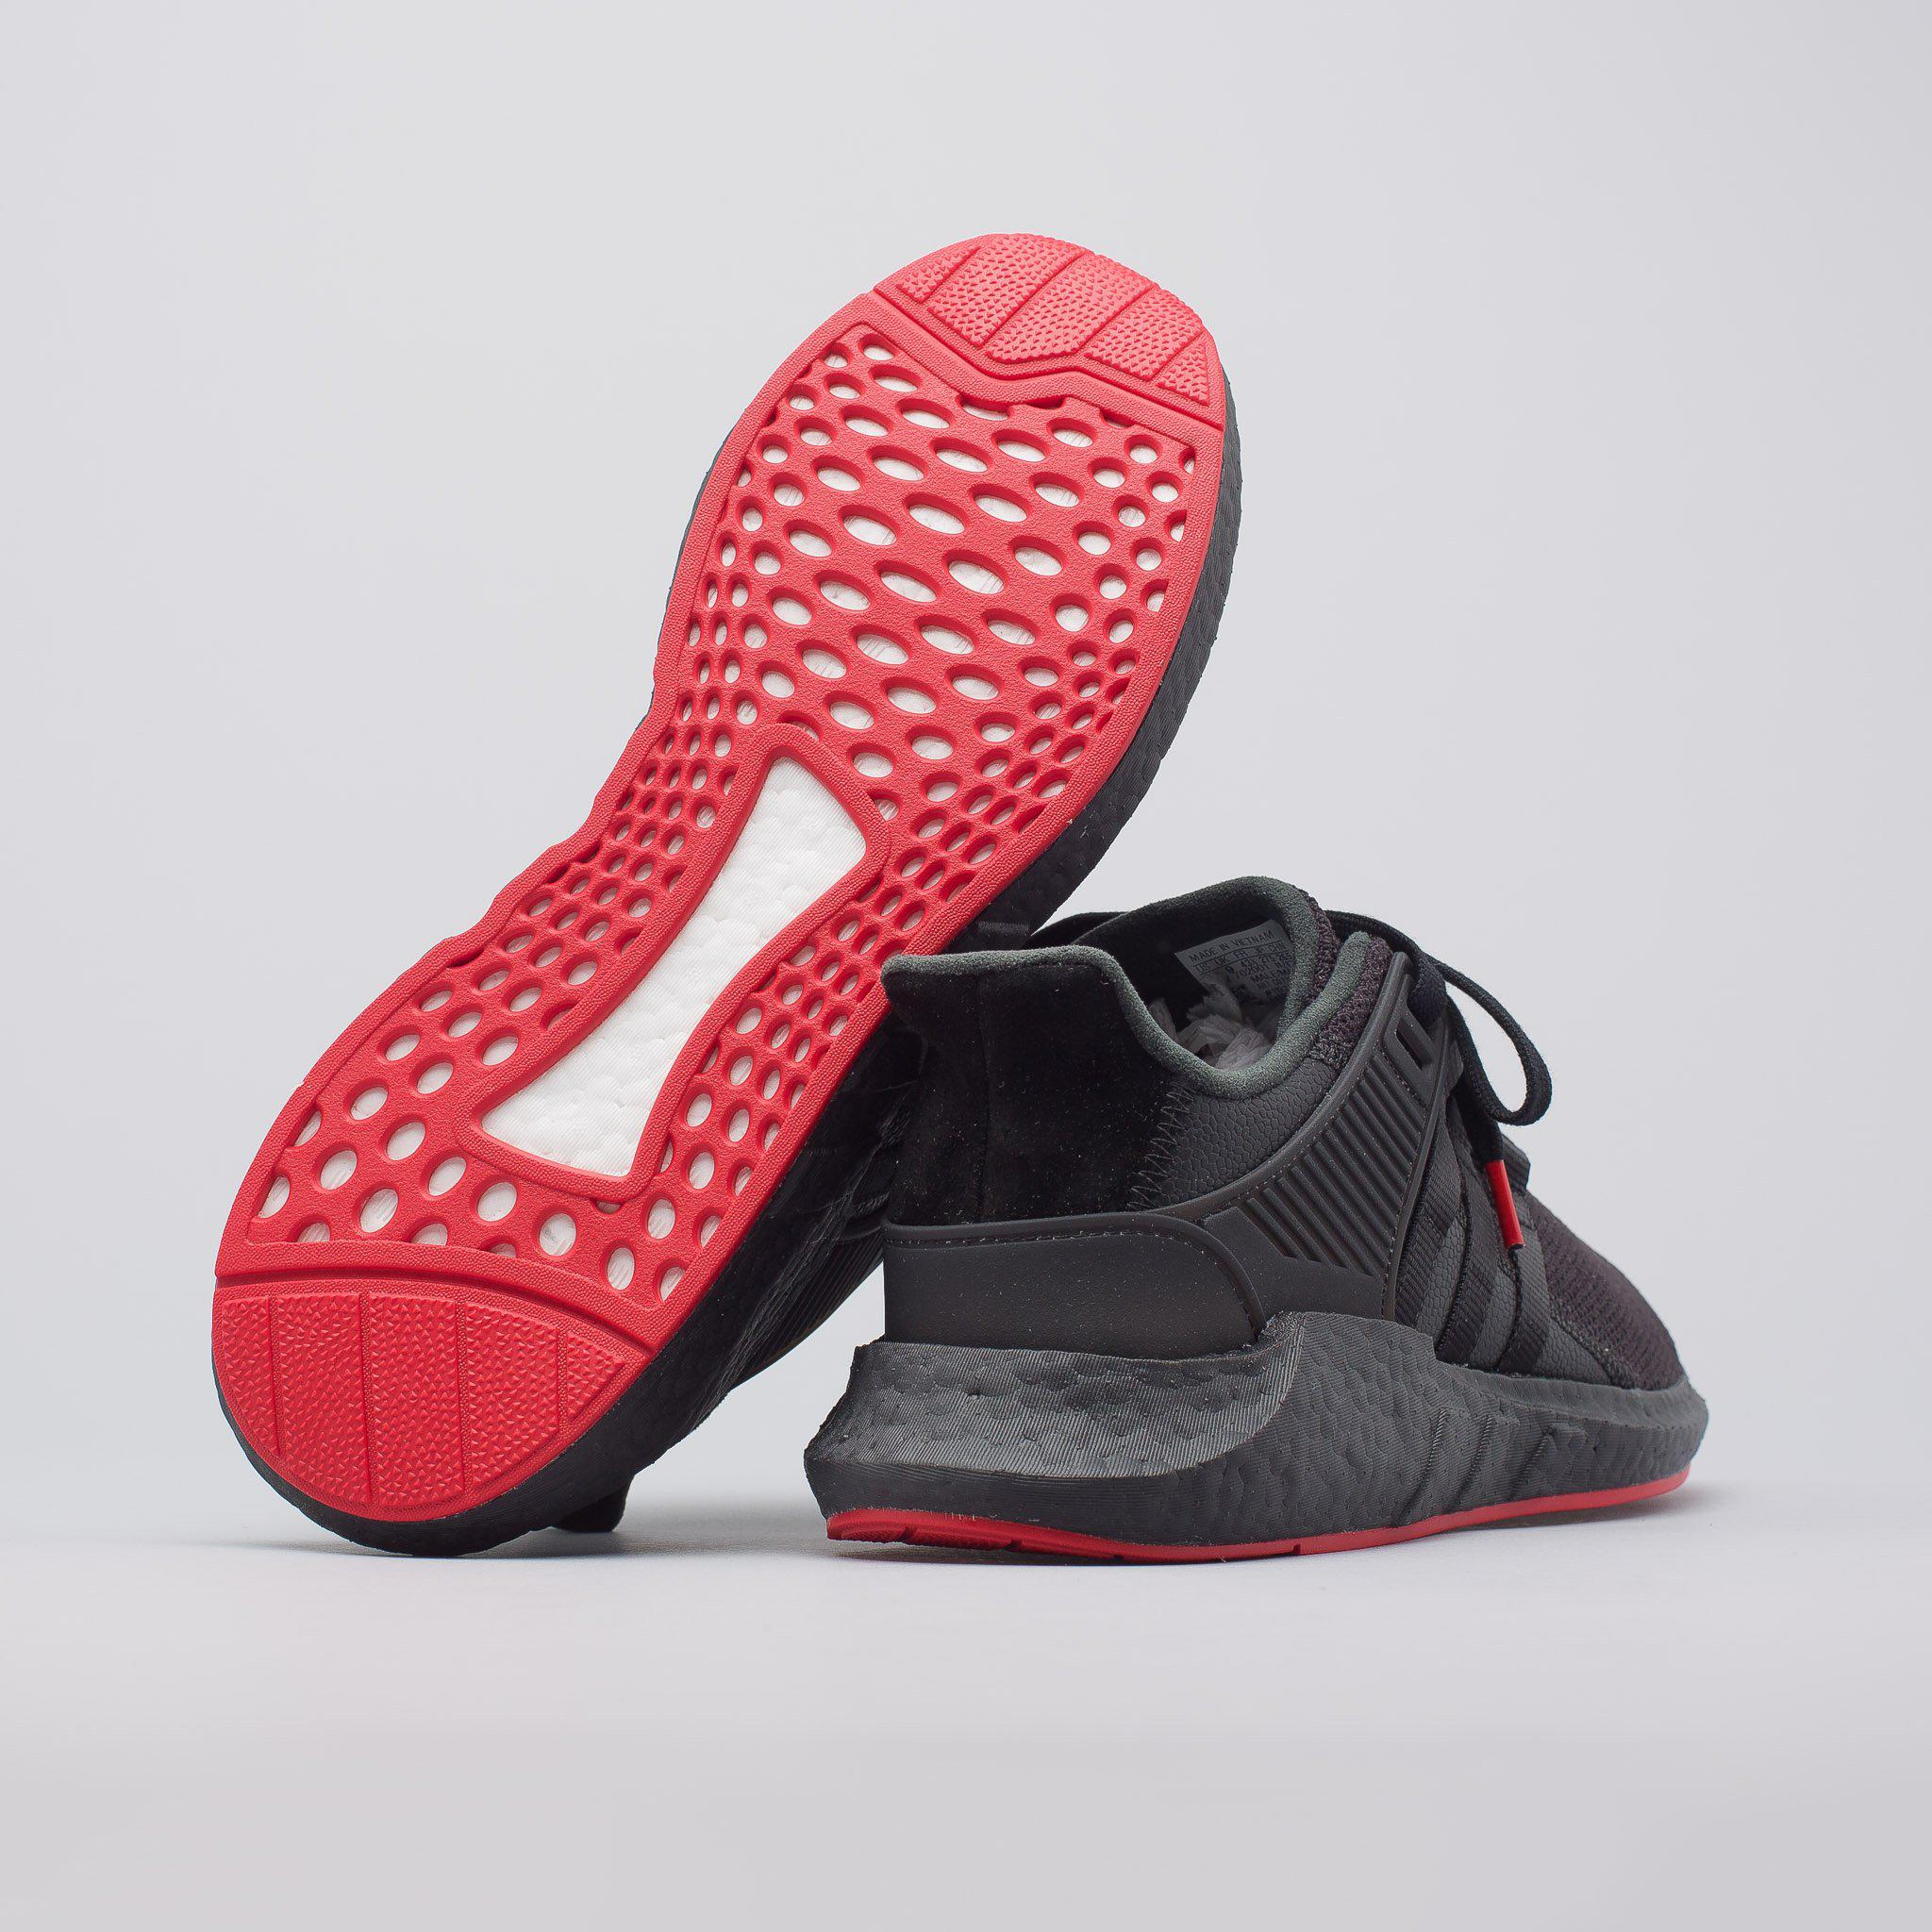 separation shoes be9ee d8c5e Lyst - adidas Eqt Support 9317 Red Carpet In Core Black in B